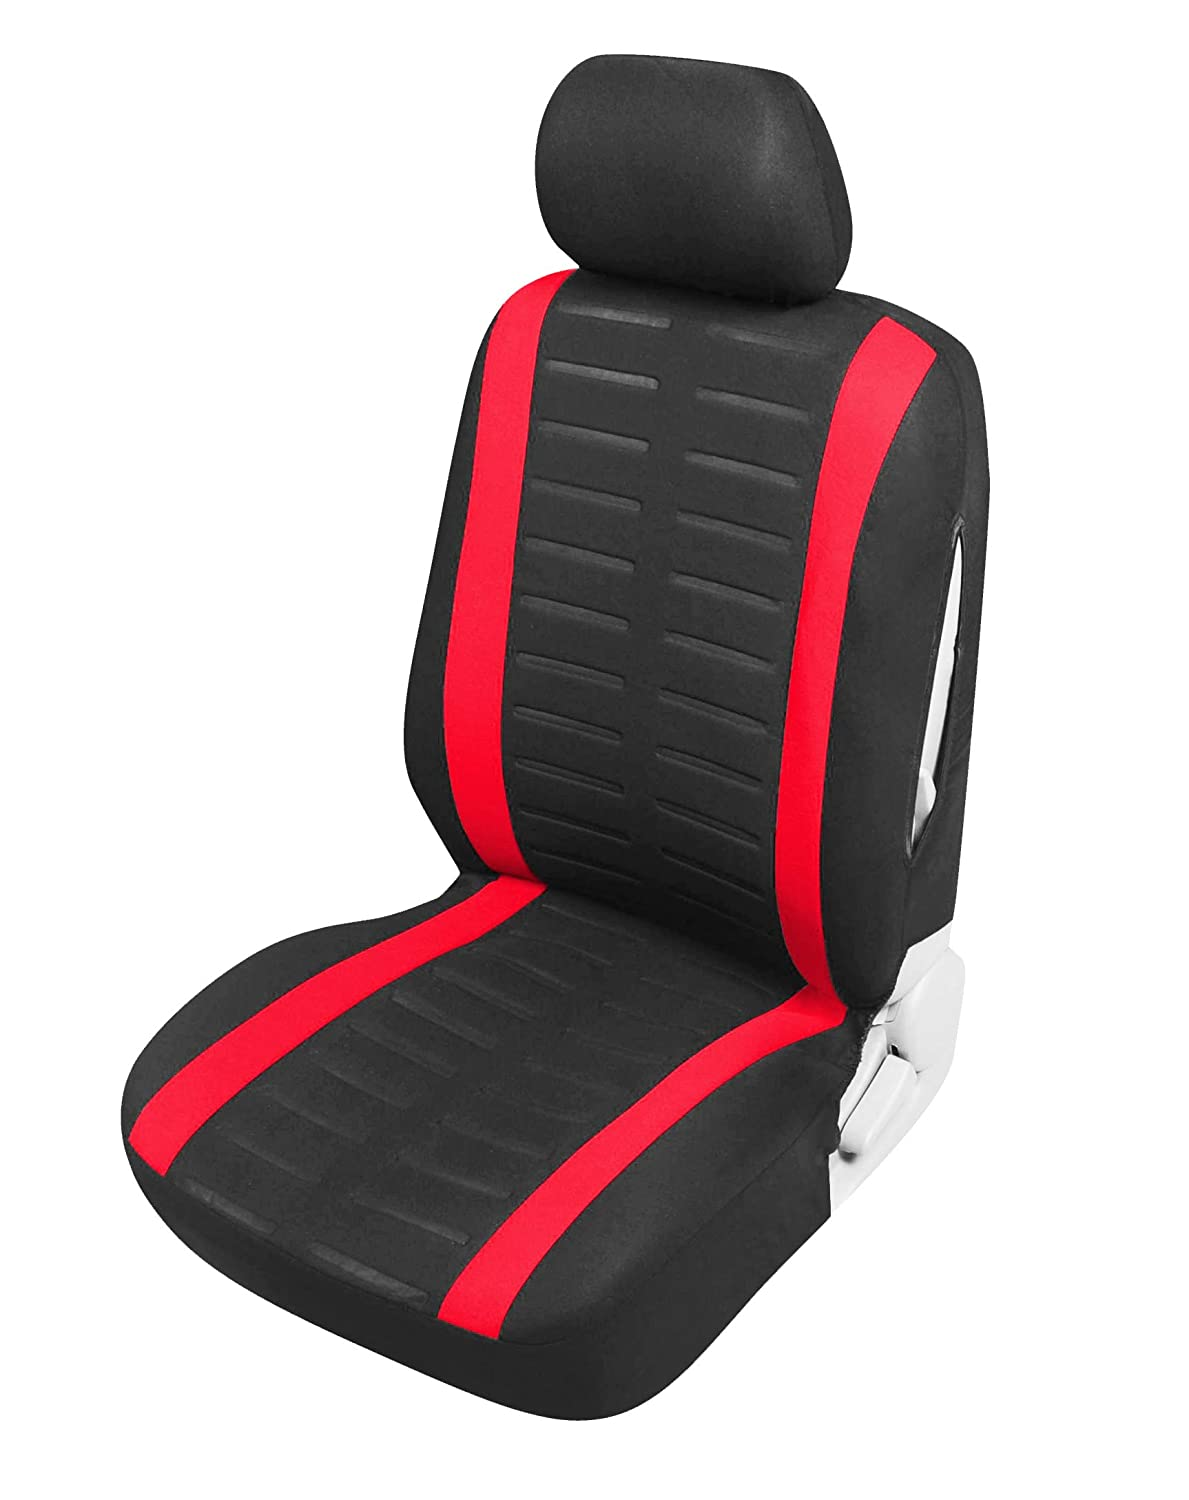 Universal Carseat Protectors for Driver and Passenger Automotive Accessories Interior Air Bag Compatible upgrade4cars Car Seat Covers Front Pair Red and Black